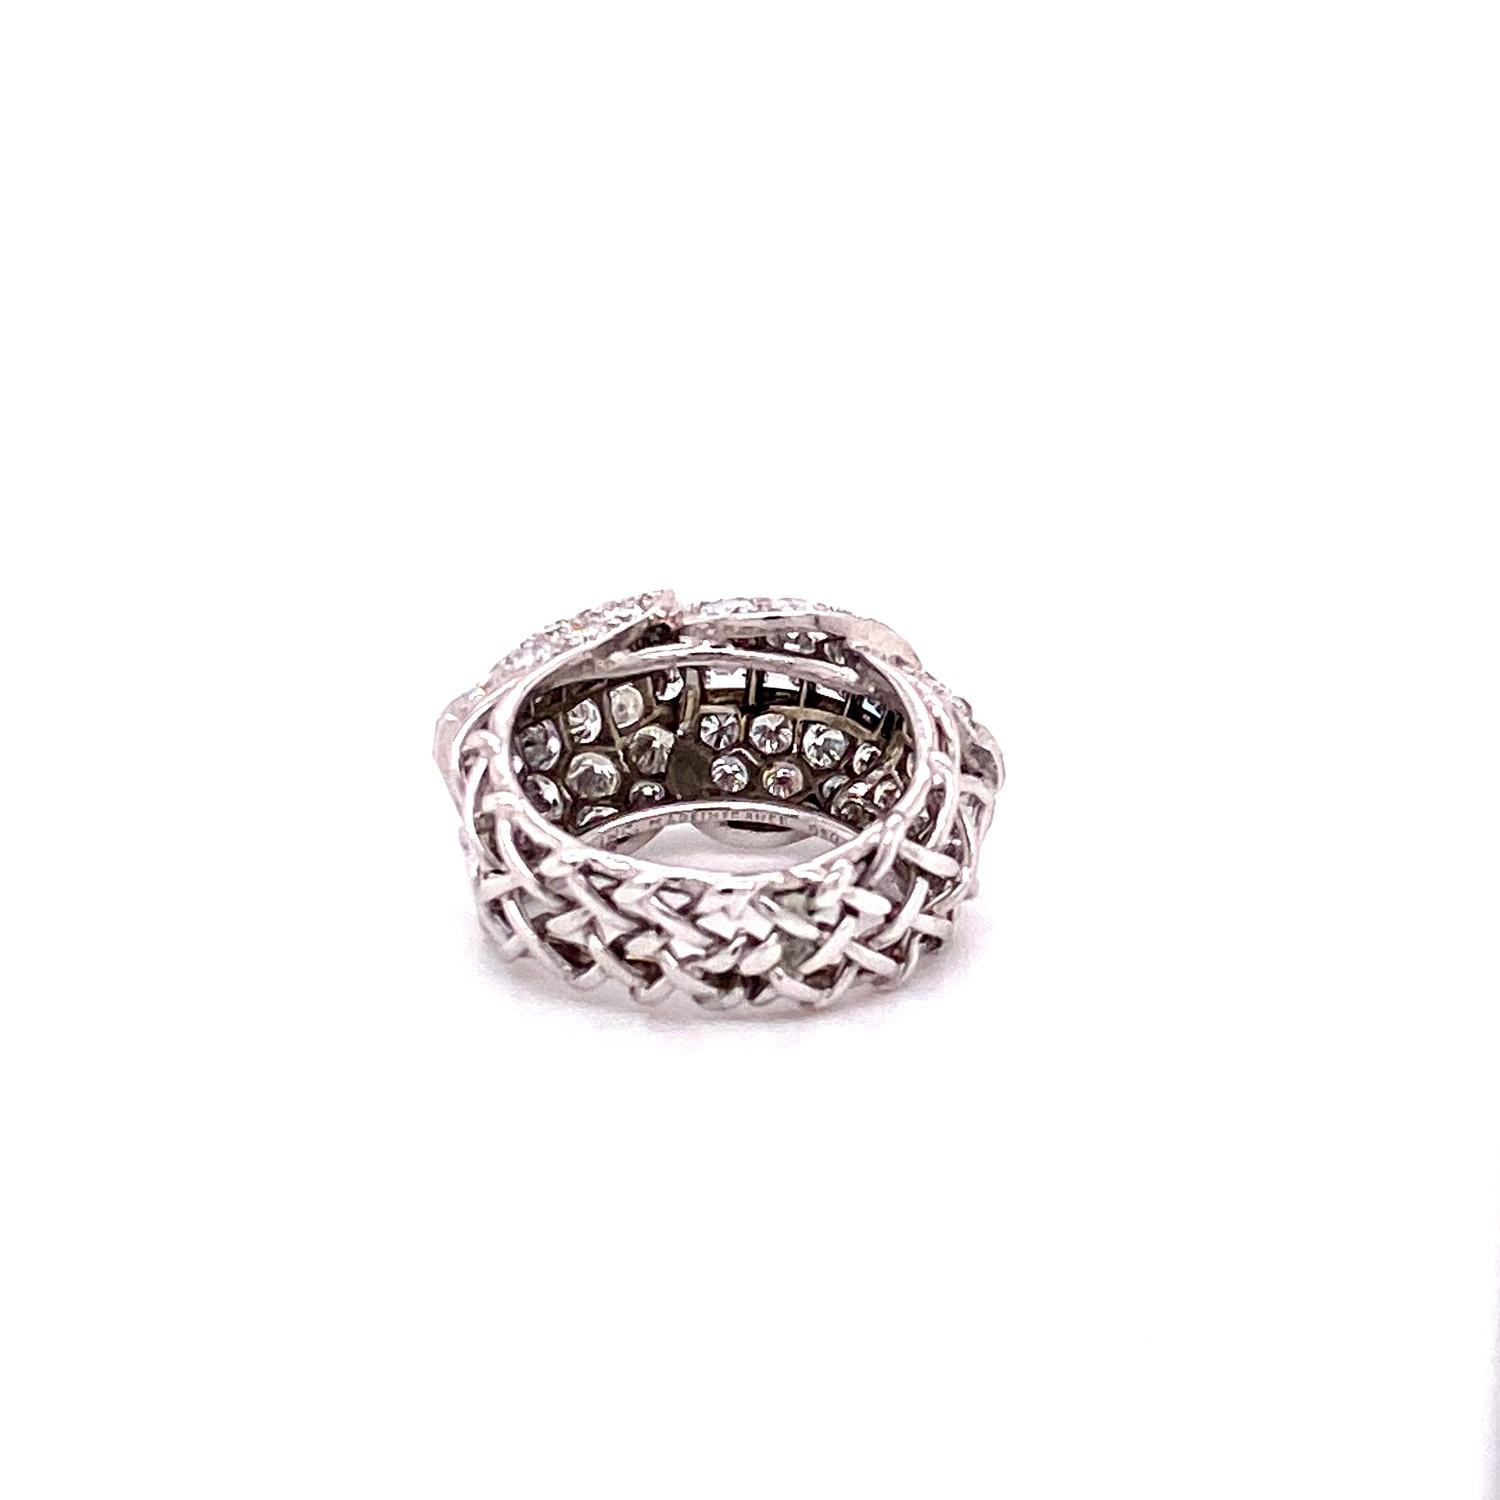 A 1950's Cartier Cocktail Ring, Cartier baguette and brilliant cut pave set dome top bombe ring - Image 8 of 9